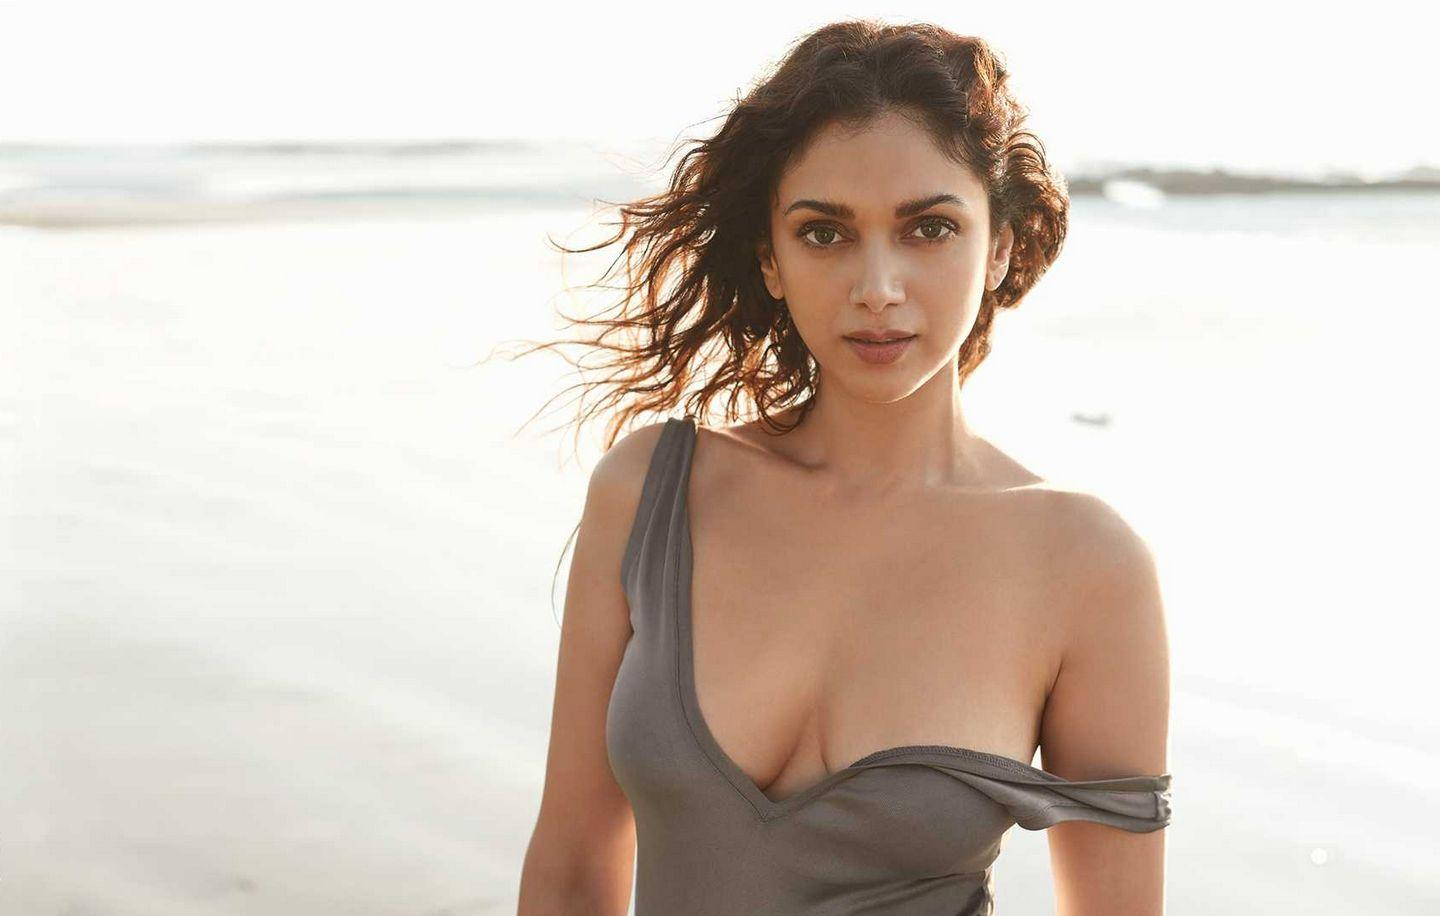 Aditi Rao Hydari Recent Hot Cleavage & Bikini Show Photoshoot Stills